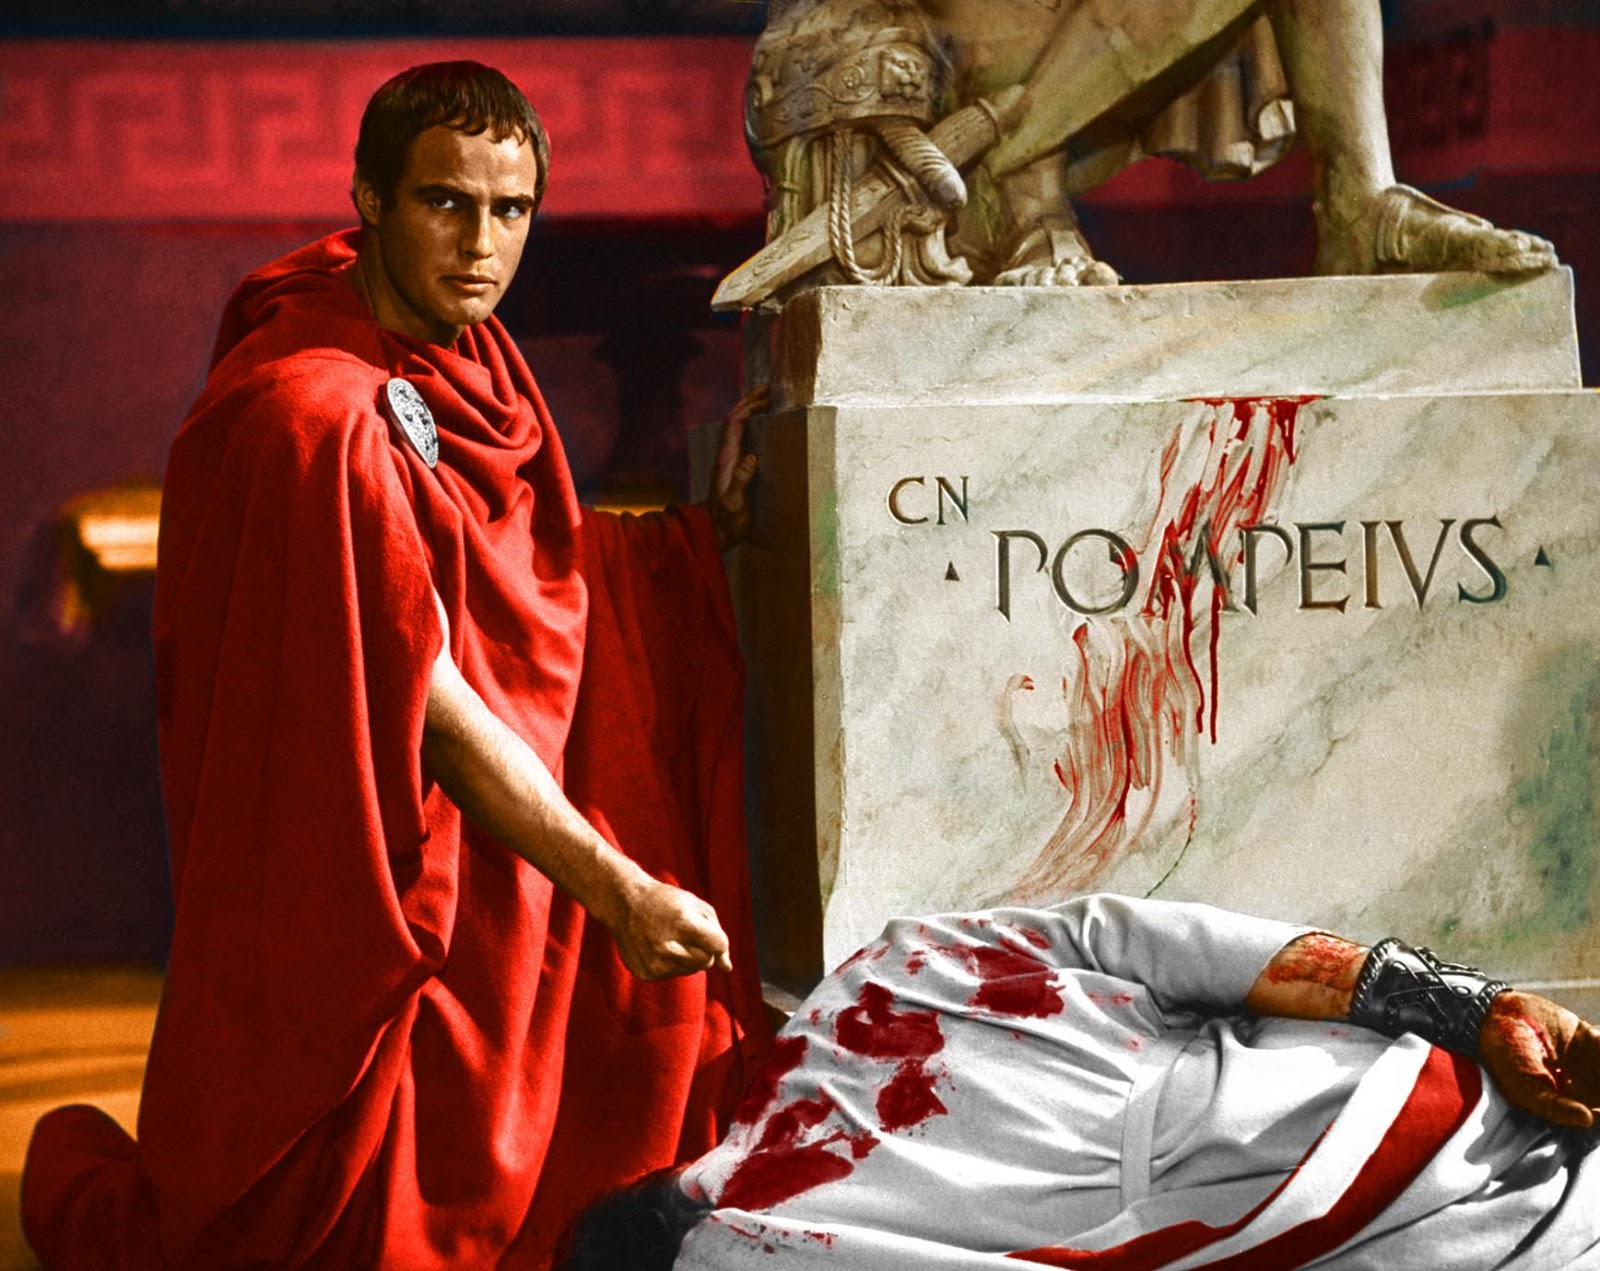 julius caesar manipulation Need help with act 1, scene 2 in william shakespeare's julius caesar check out our revolutionary side-by-side summary and analysis.